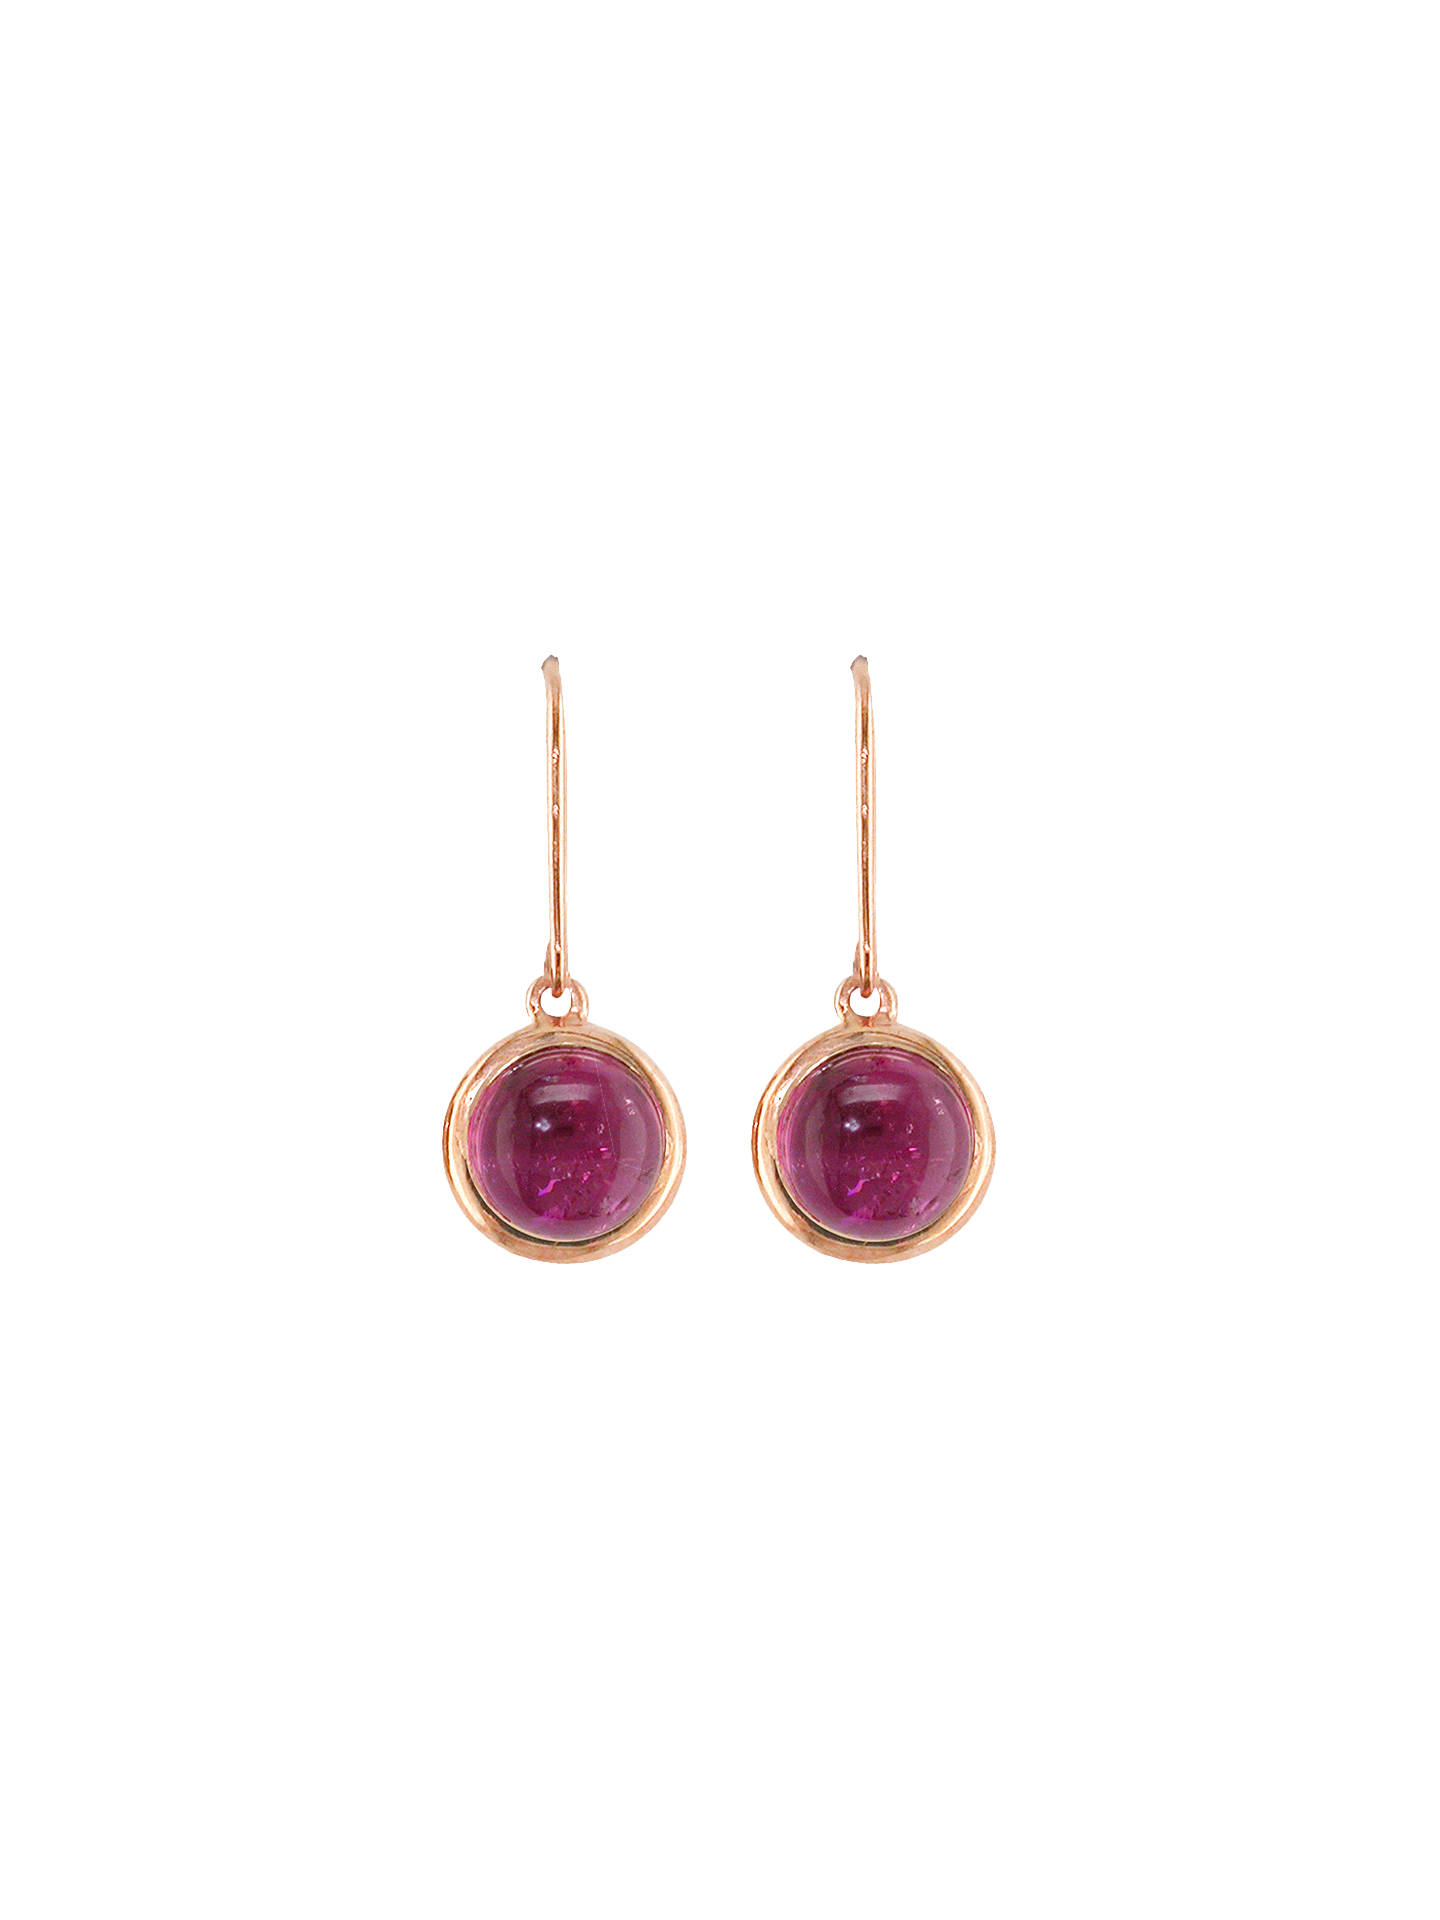 BuyLondon Road 9ct Rose Gold Pimlico Bubble Drop Earrings, Tourmaline Online at johnlewis.com